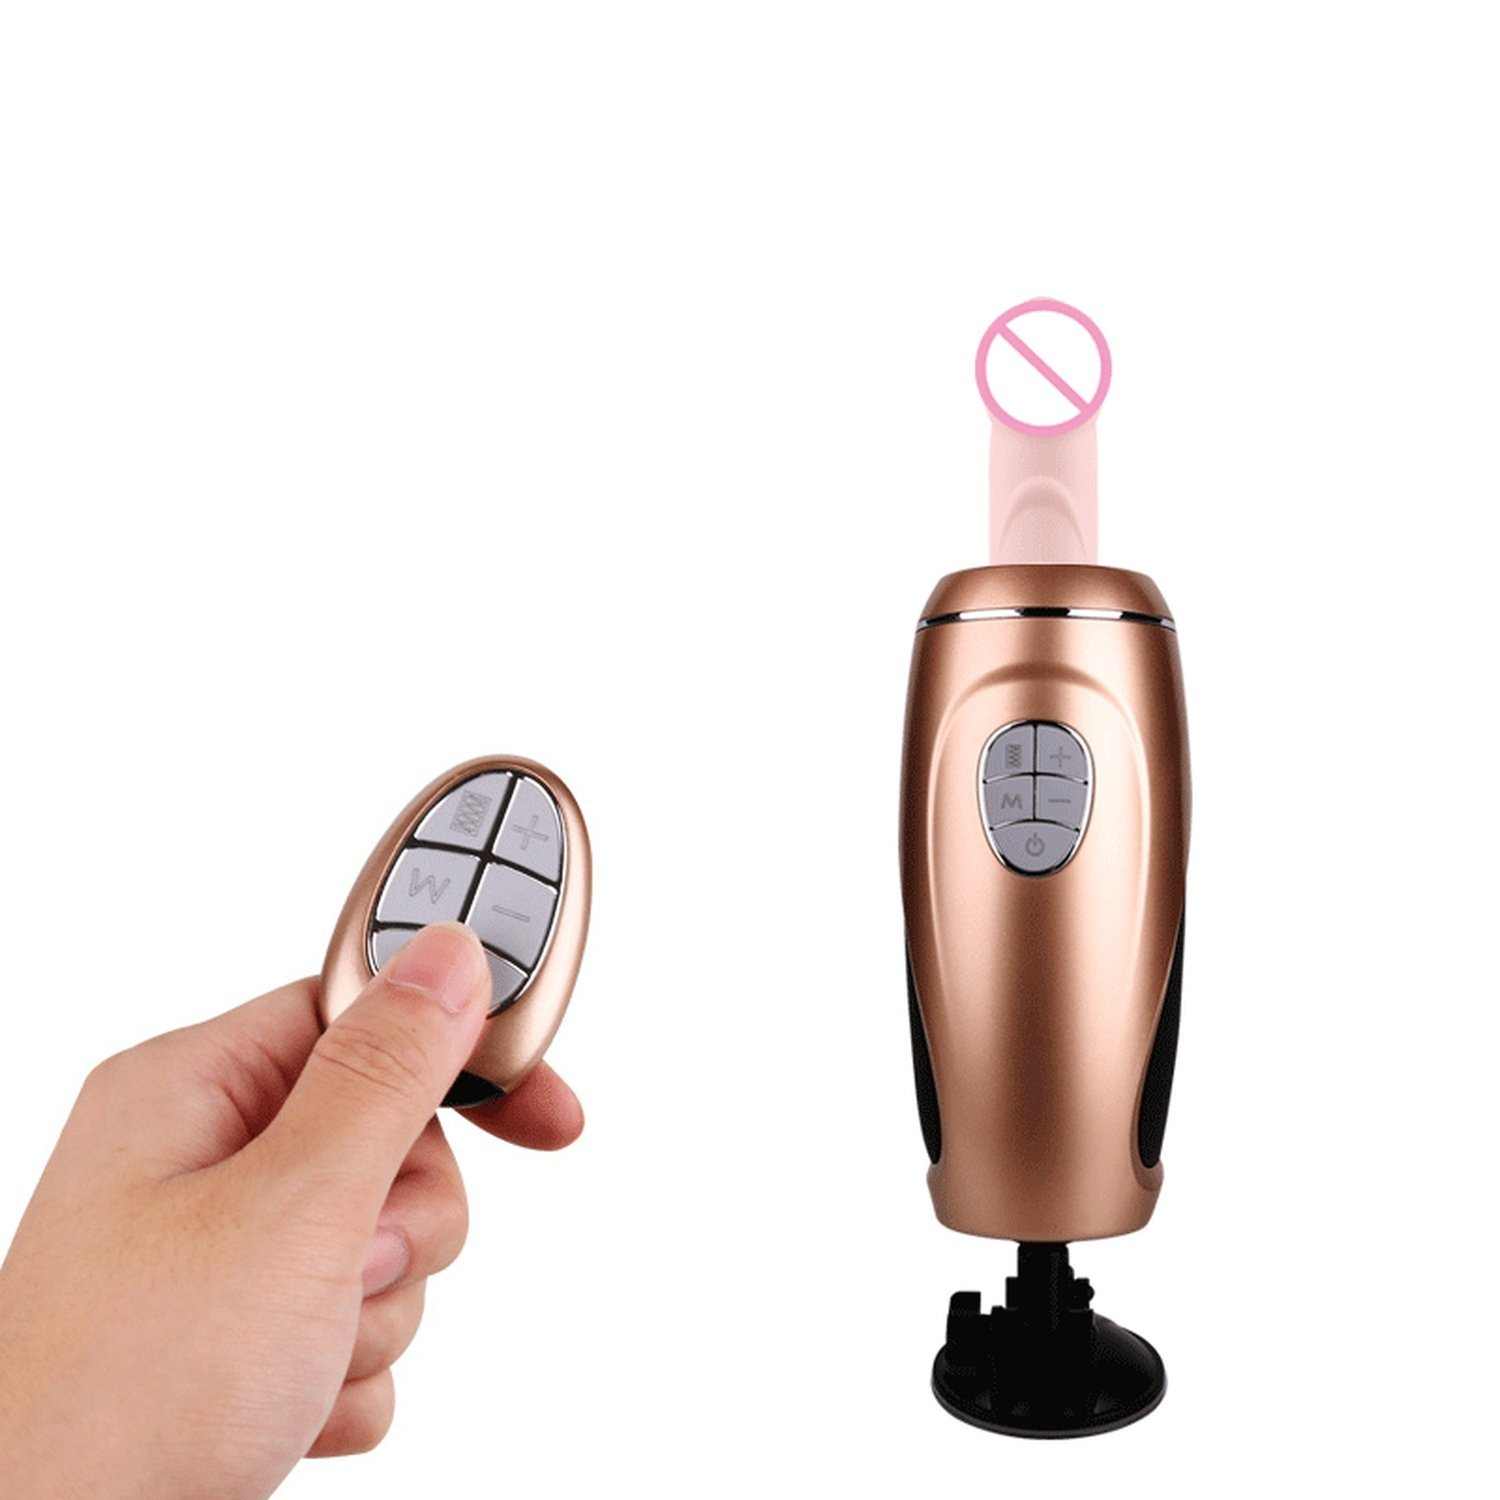 USEXMTY S-Tshirt Adult Toys ORGAT Remote Control Sex Machine Gun Automatic Thrusting P-énis Vibrator Suction Cup Female Masturbation Adult Seeex-Toys for Woman,Gold Cleverly by USEXMTY S-Tshirt (Image #3)